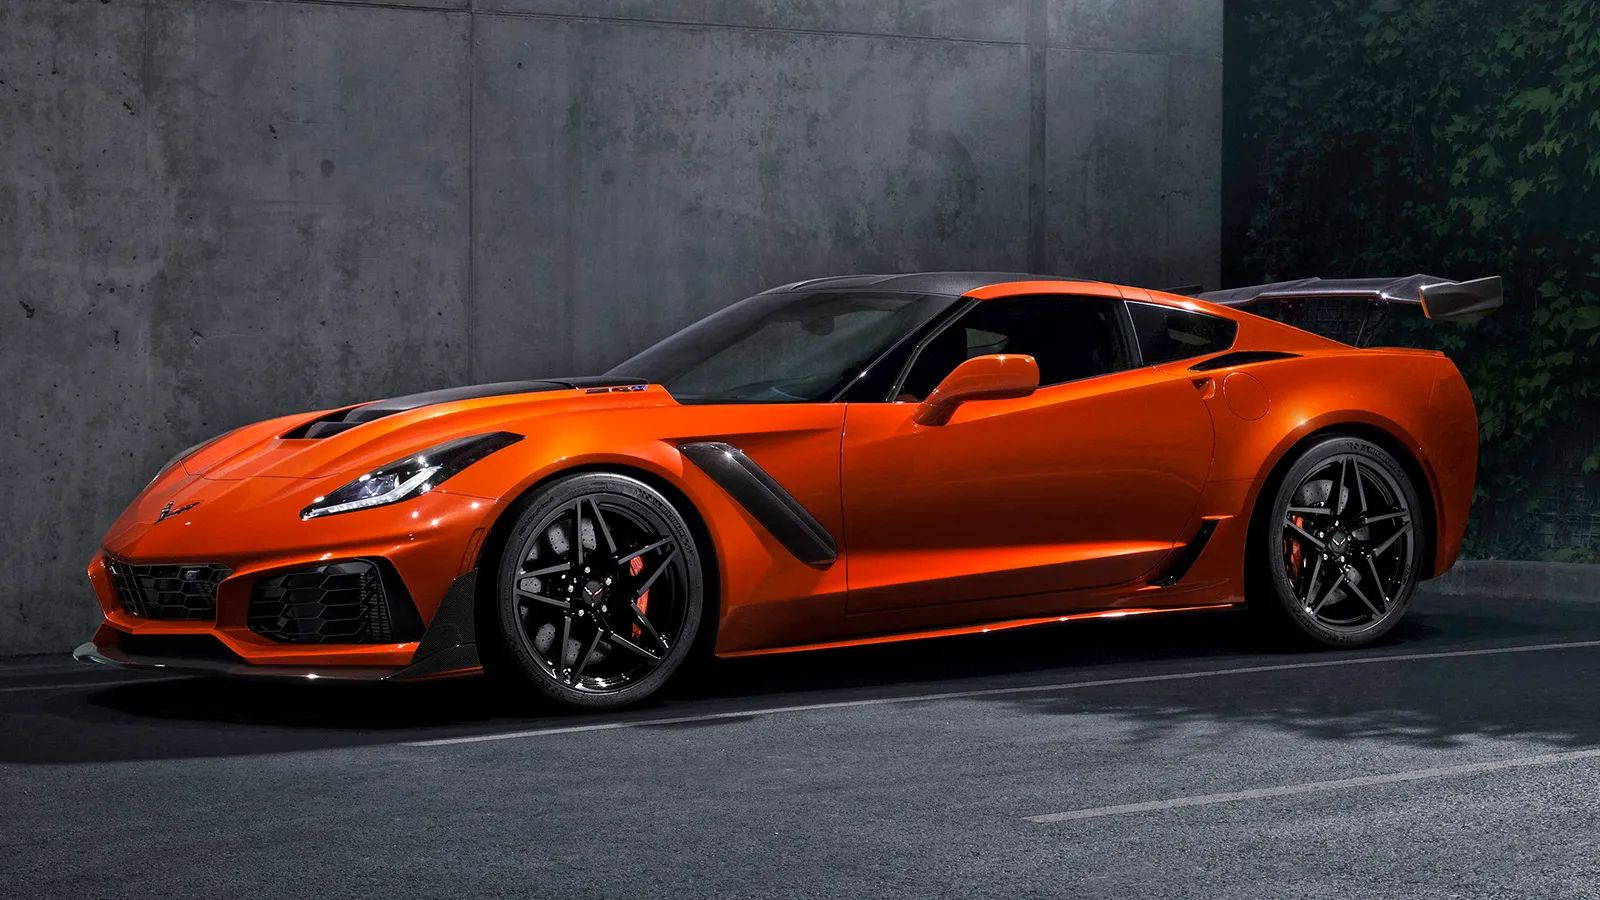 2019 chevrolet corvette zr1 leaks will boast 750